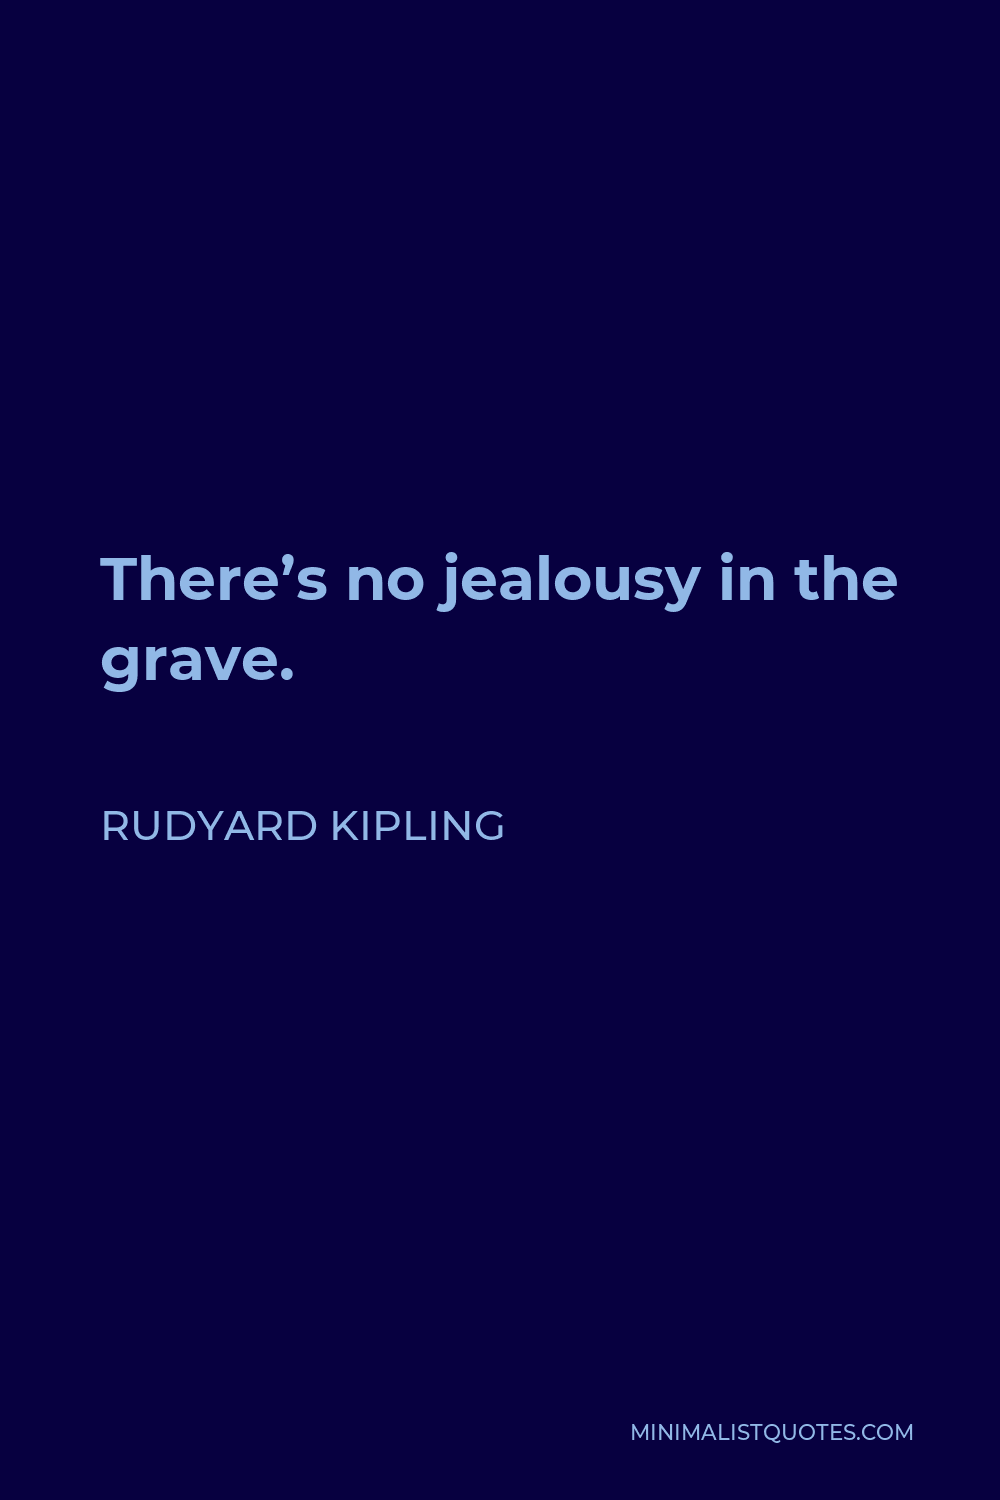 Rudyard Kipling Quote - There's no jealousy in the grave.